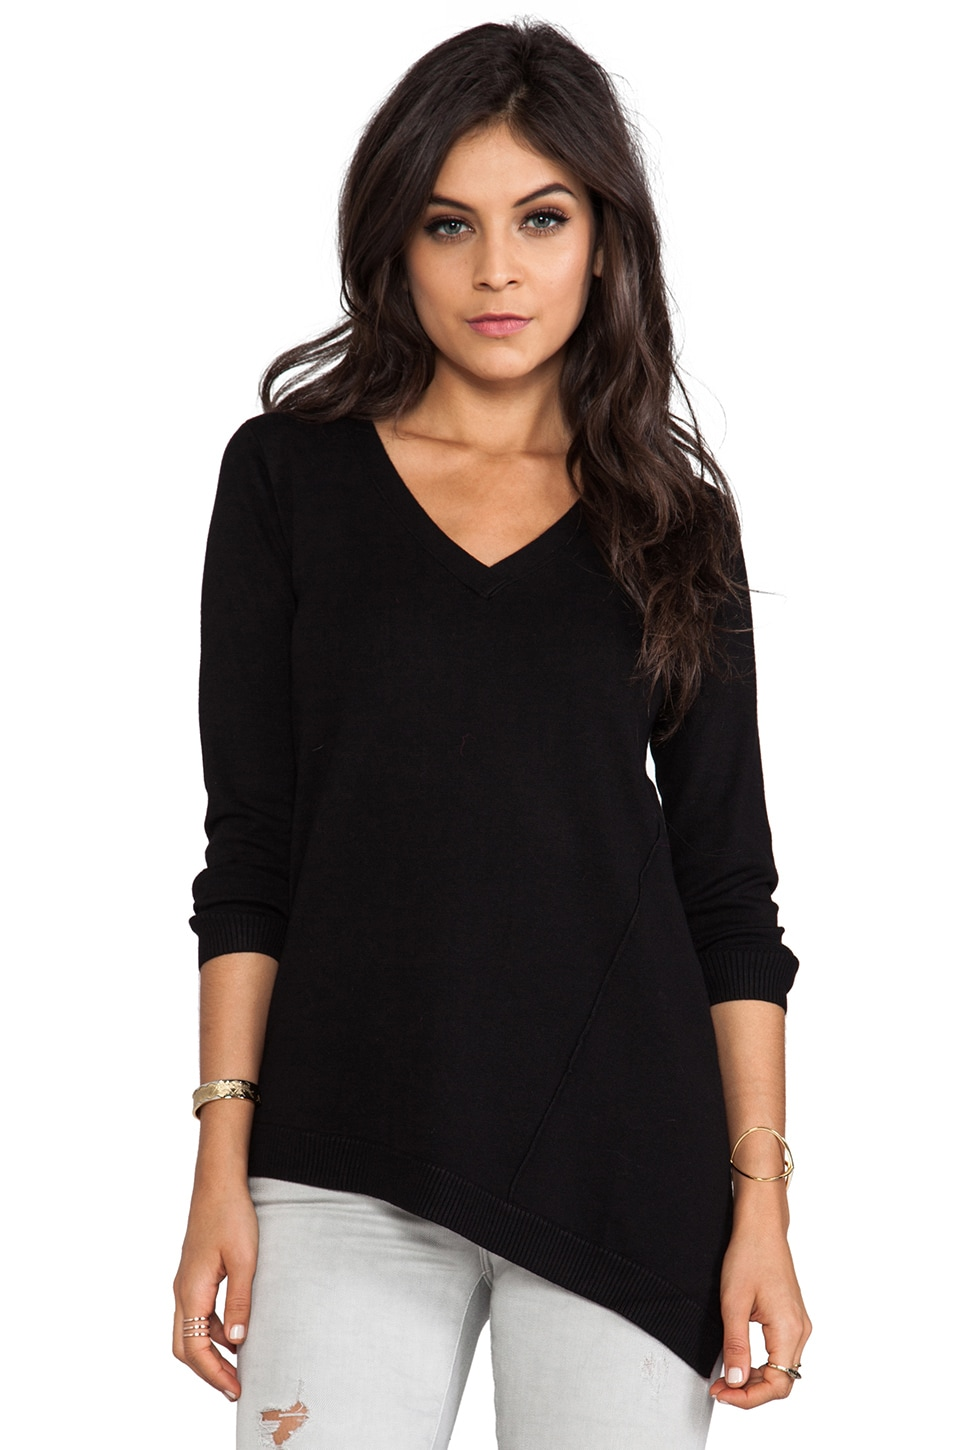 Central Park West Asymmetrical Casper Sweater in Black